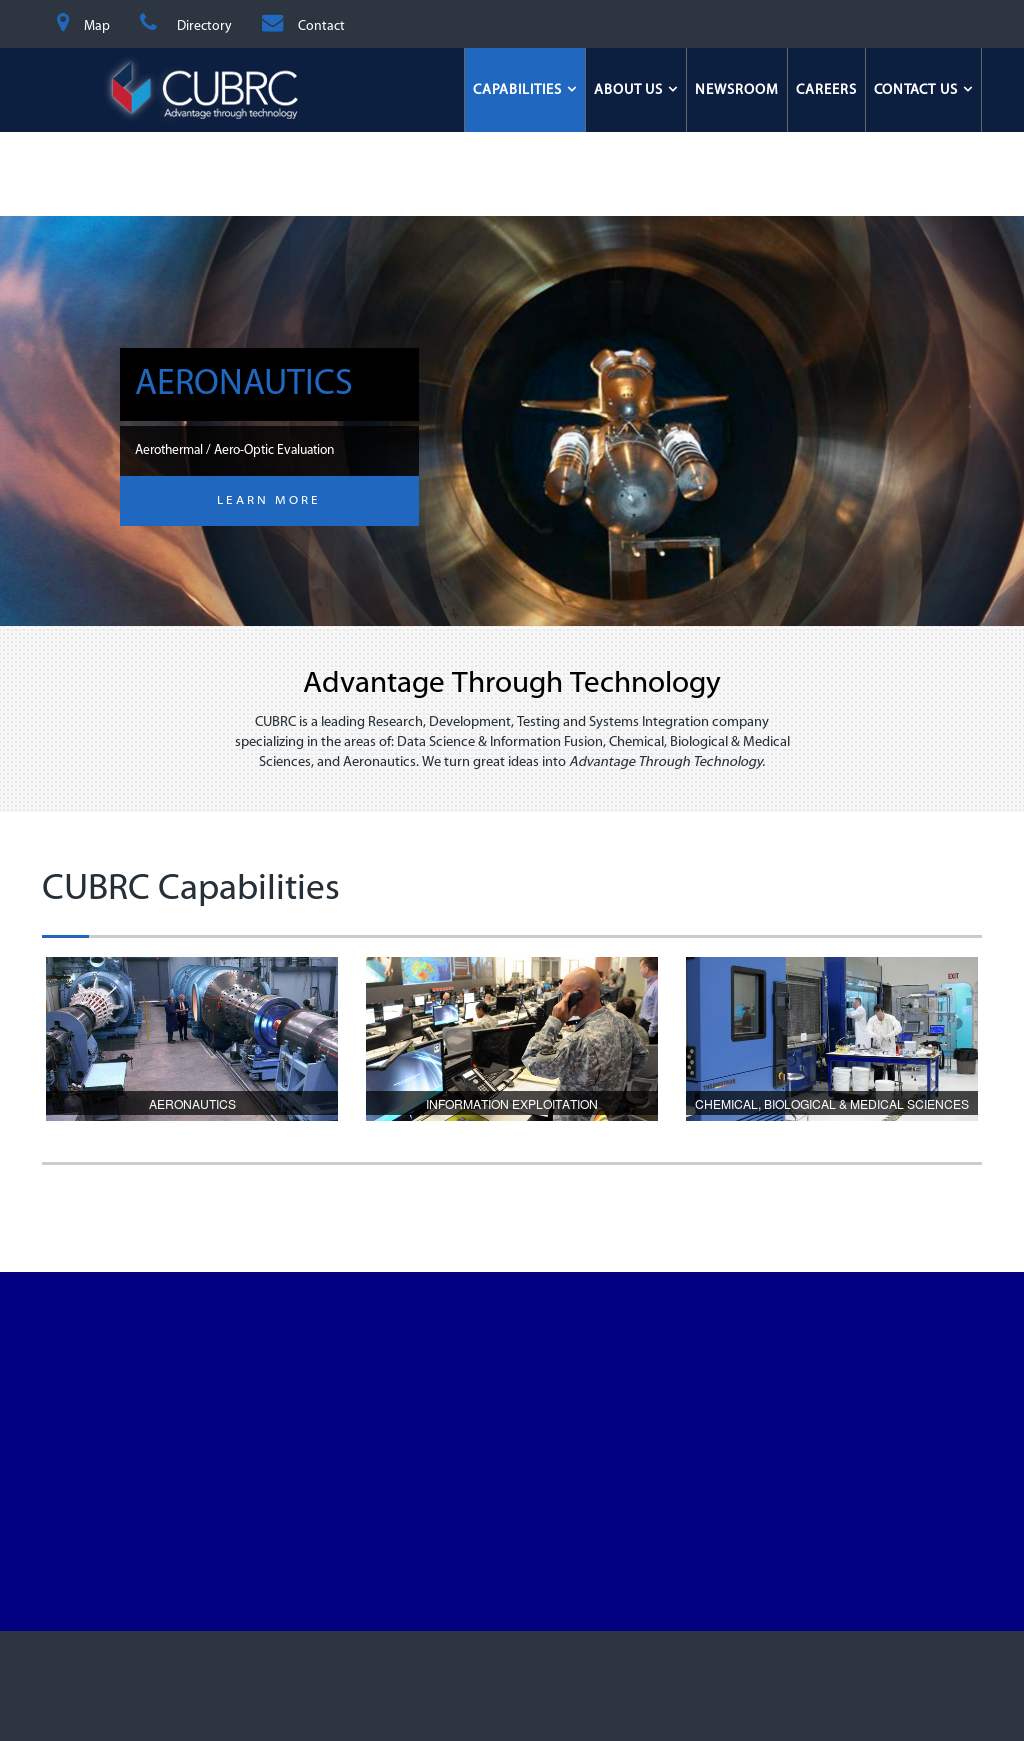 CUBRC Competitors, Revenue and Employees - Owler Company Profile